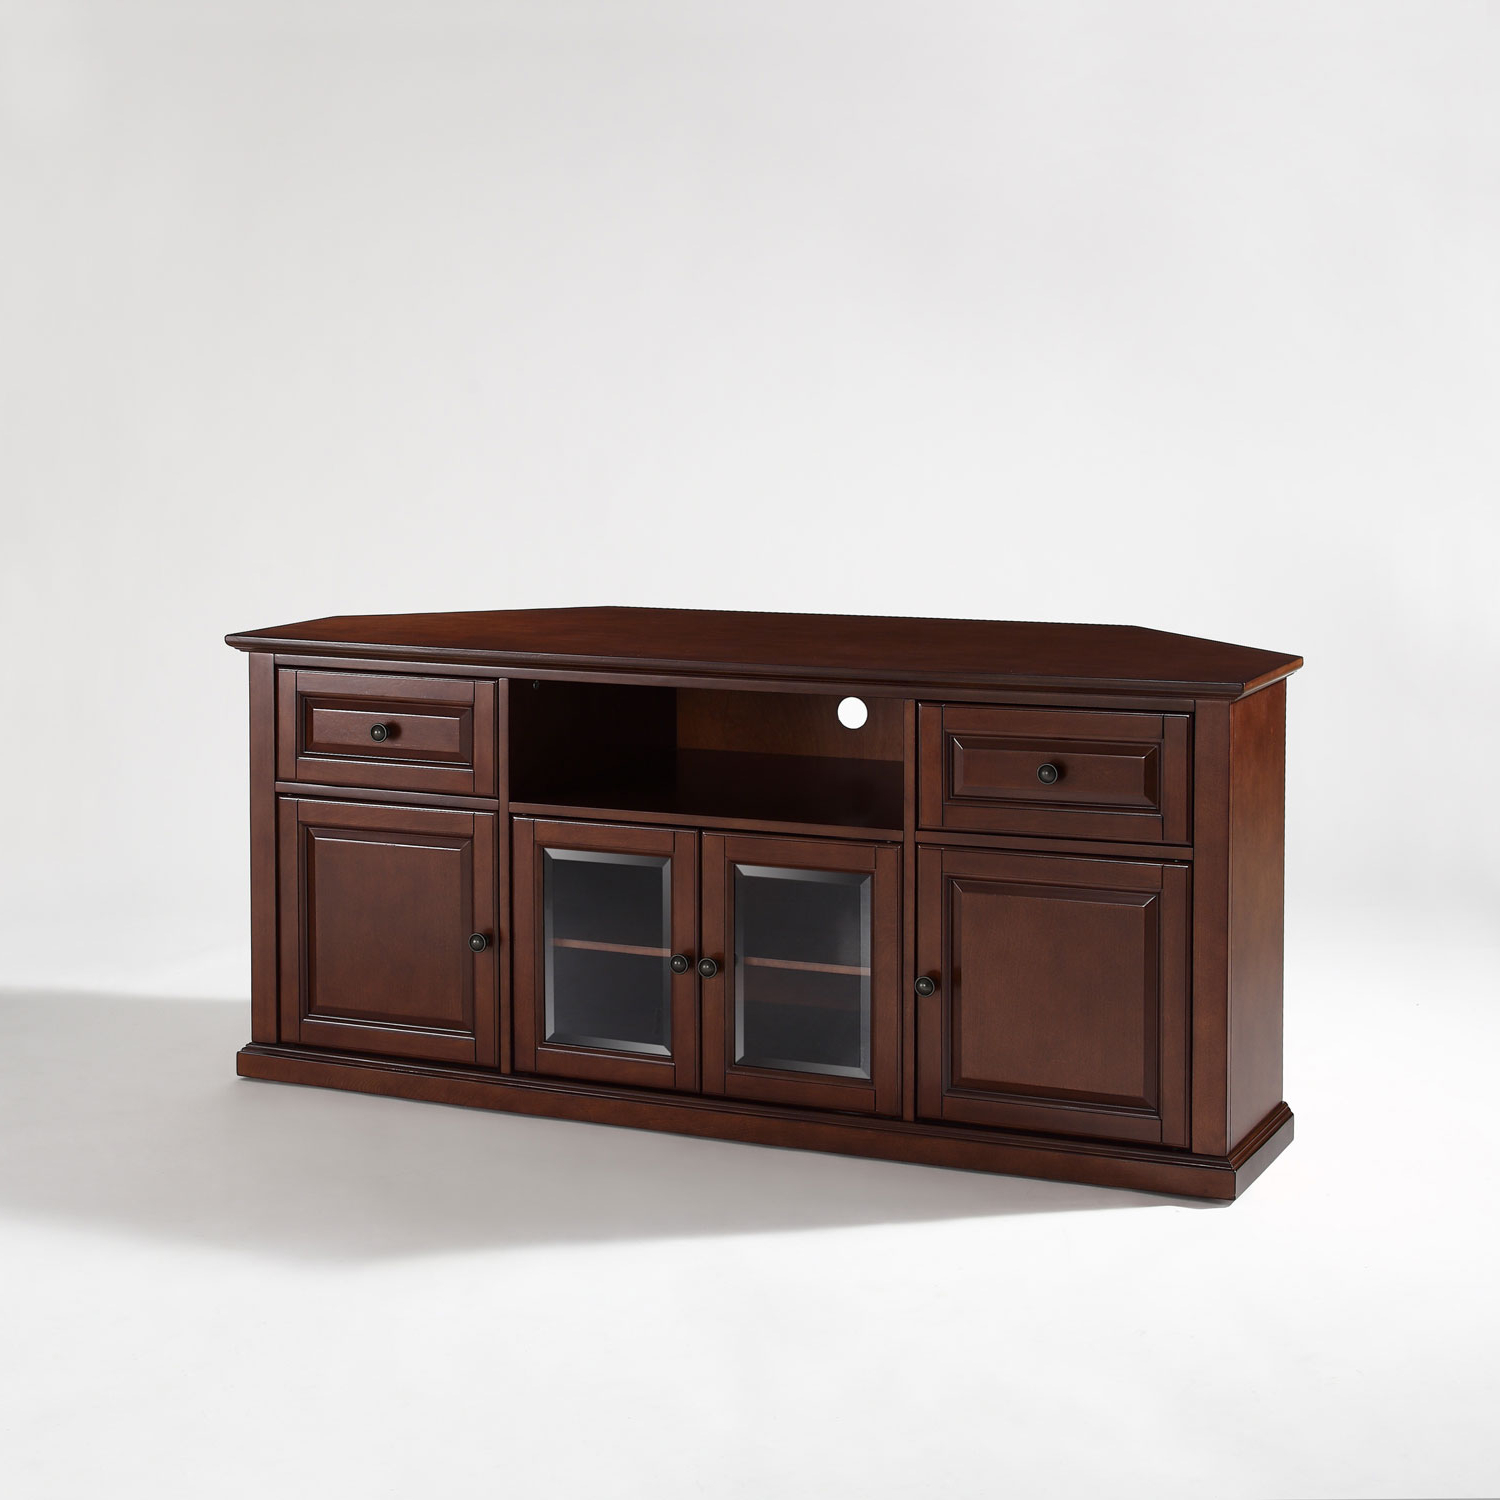 Widely Used Crosley Furniture 60 Inch Corner Tv Stand In Vintage Mahogany Inside Tv Stands For Corners (View 14 of 20)